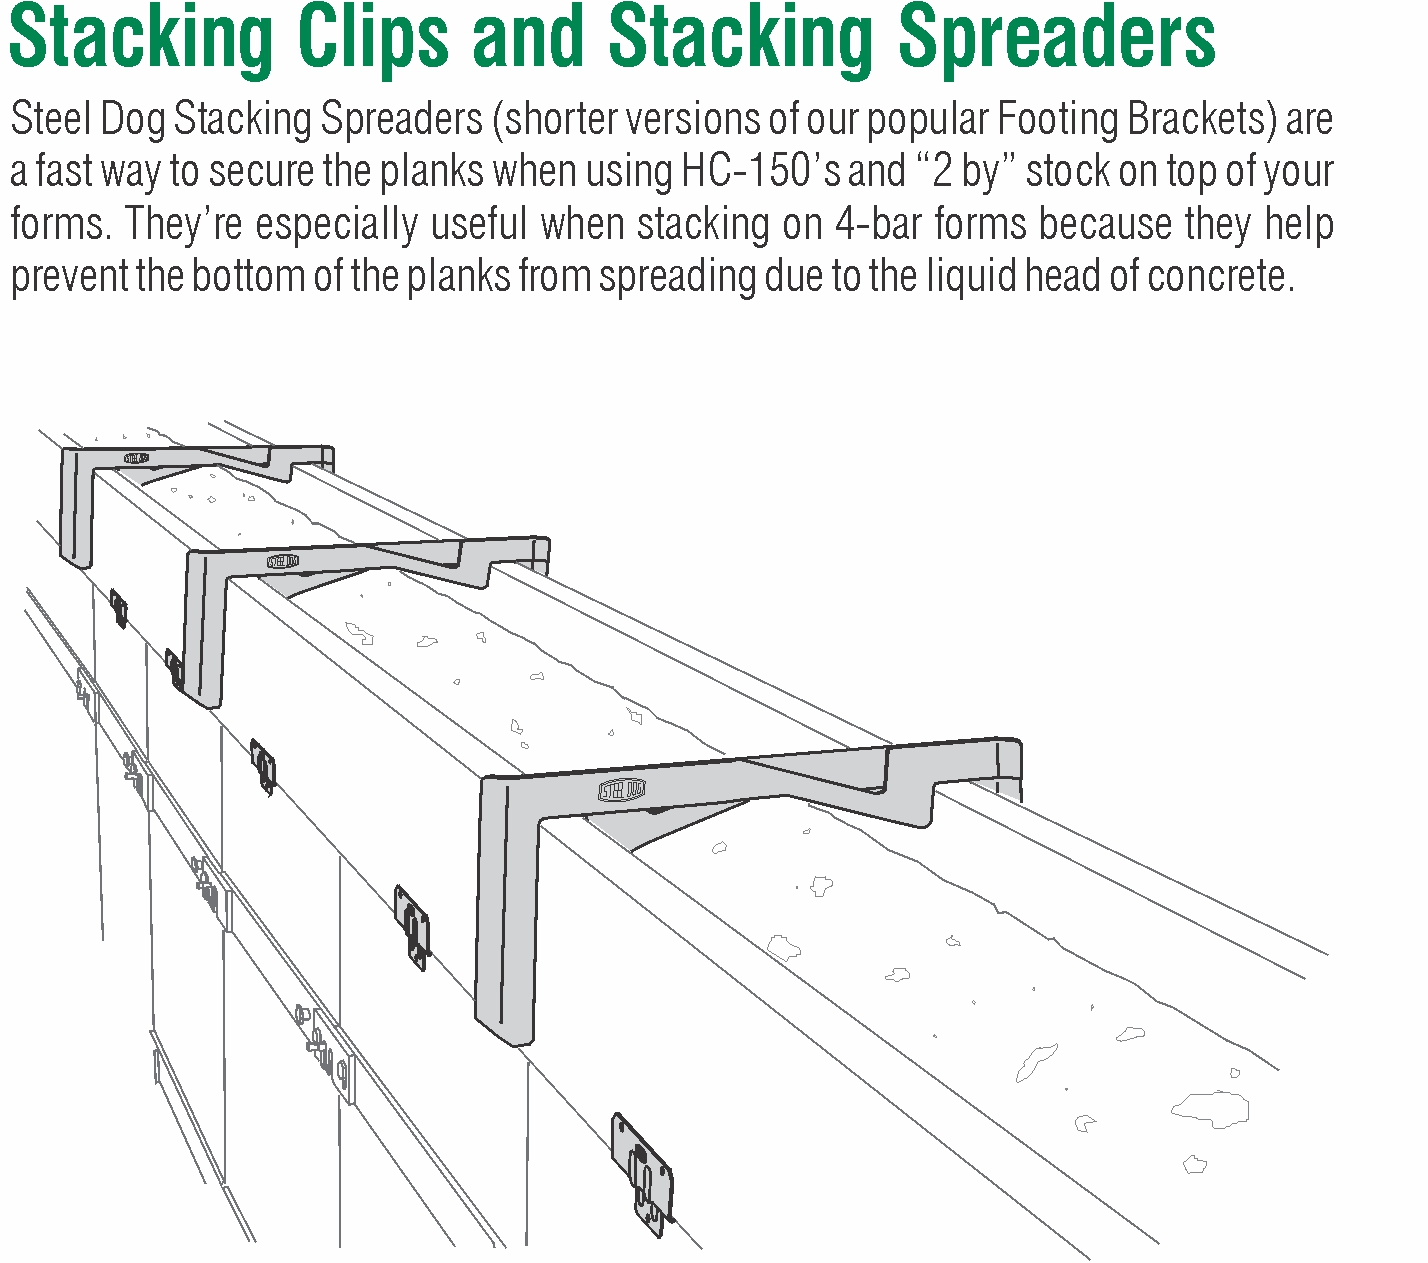 Stacking Clips and Stacking Spreaders Drawing.jpg